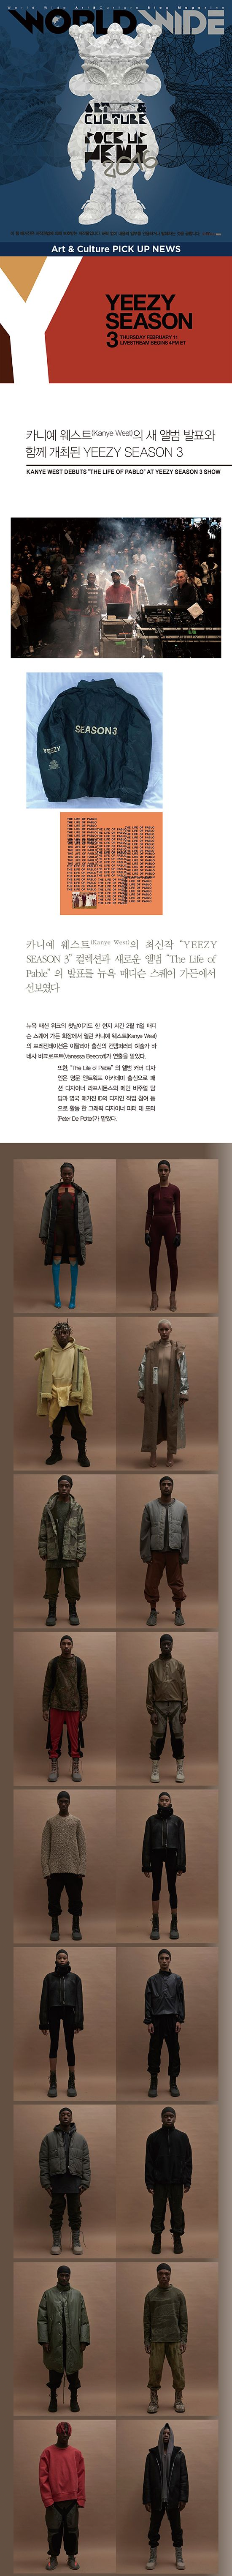 Blog Magazine ● WORLD WIDE: Art & Culture PICK UP NEWS∥카니예 웨스트(Kanye West)의 새 앨범 발표와 함께 개최된 YEEZY SEASON 3